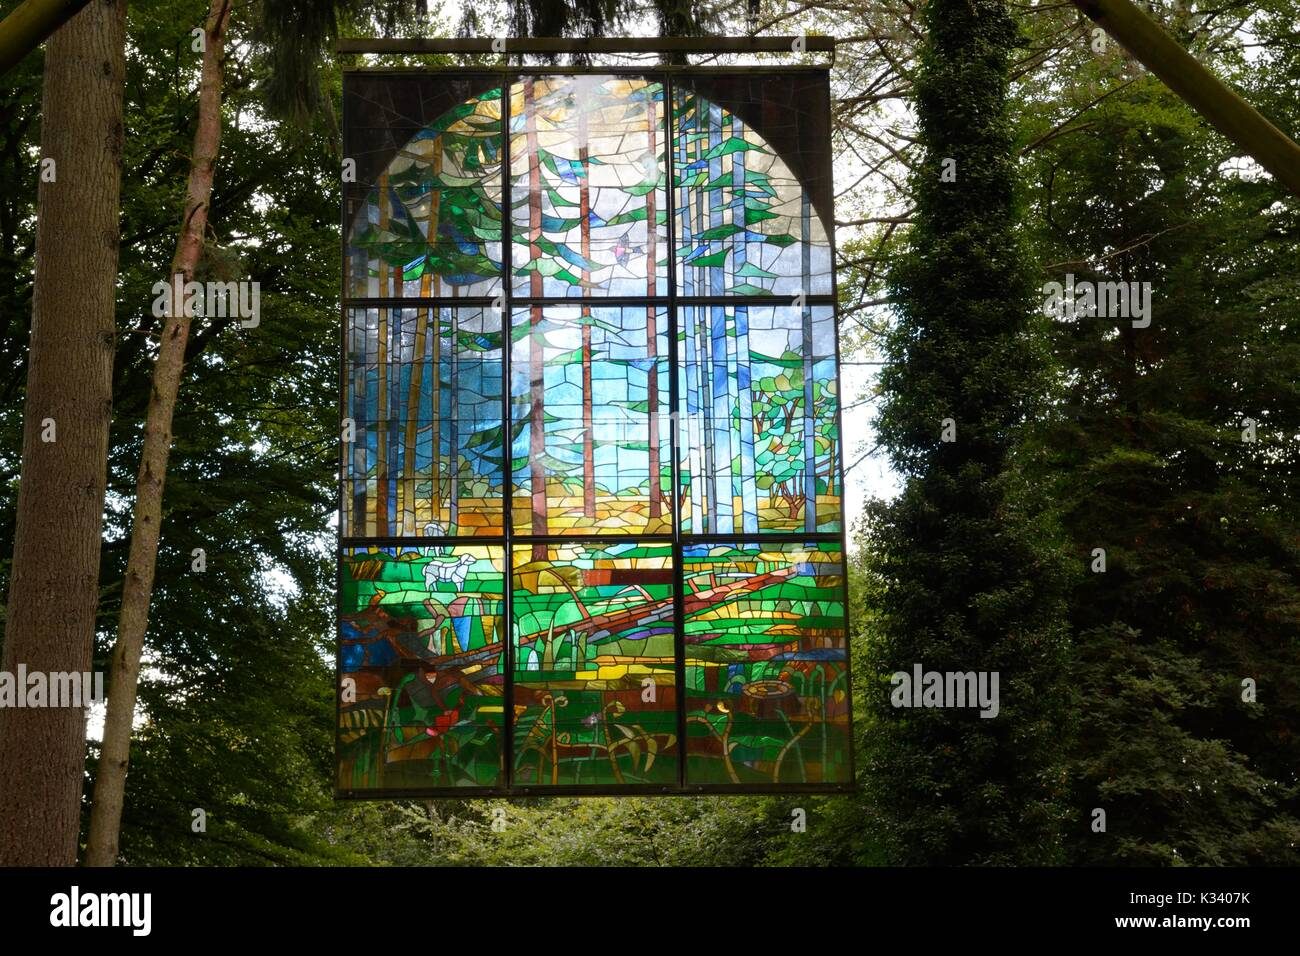 The Cathedral stained glass window  nade in 1986 depicting the life of the forest Forest of Dean Engleand UK GB - Stock Image